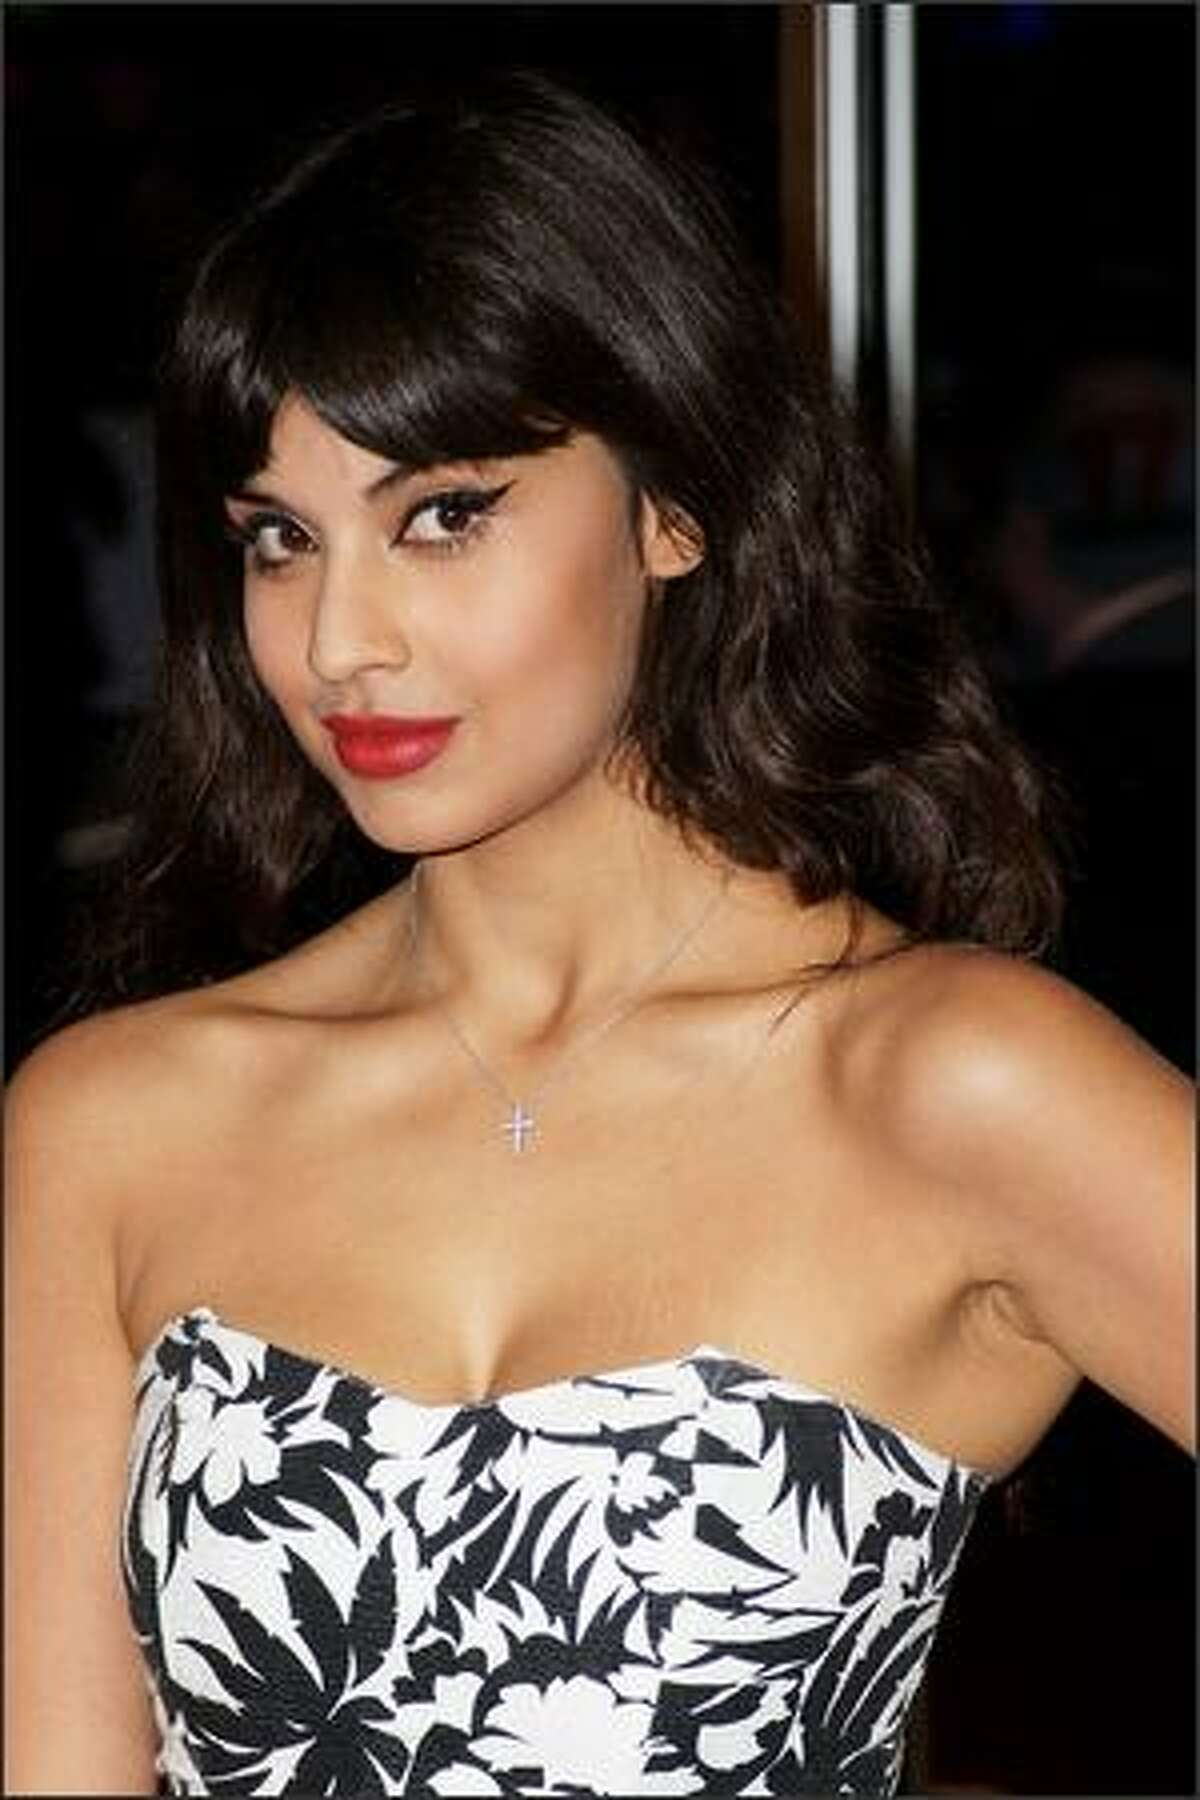 Jameela Jamil attends the UK premiere of